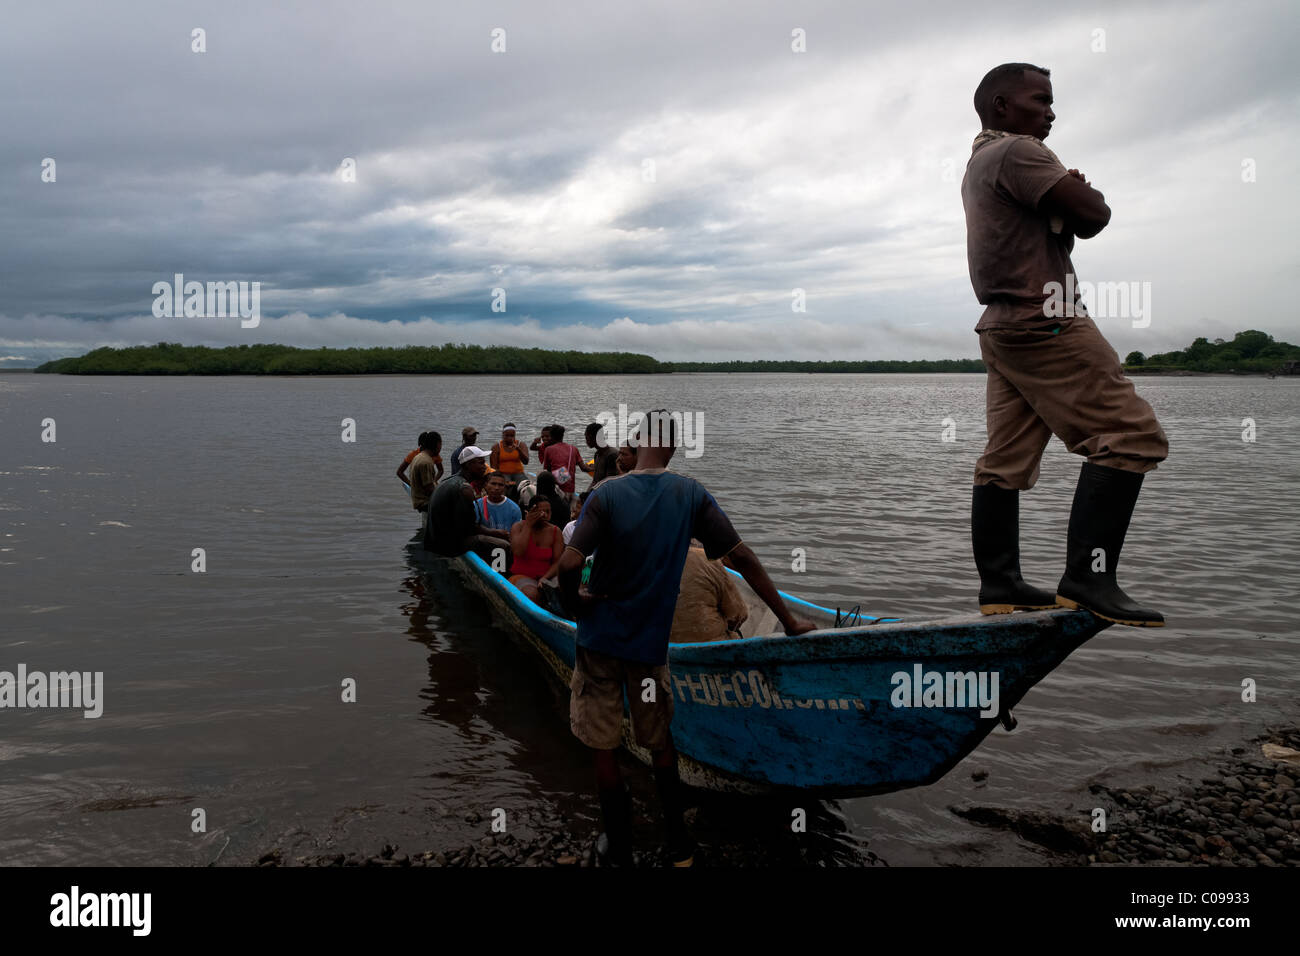 Colombian shellfish pickers embark on a canoe going to the mangrove swamps on the Pacific coast, Colombia. - Stock Image